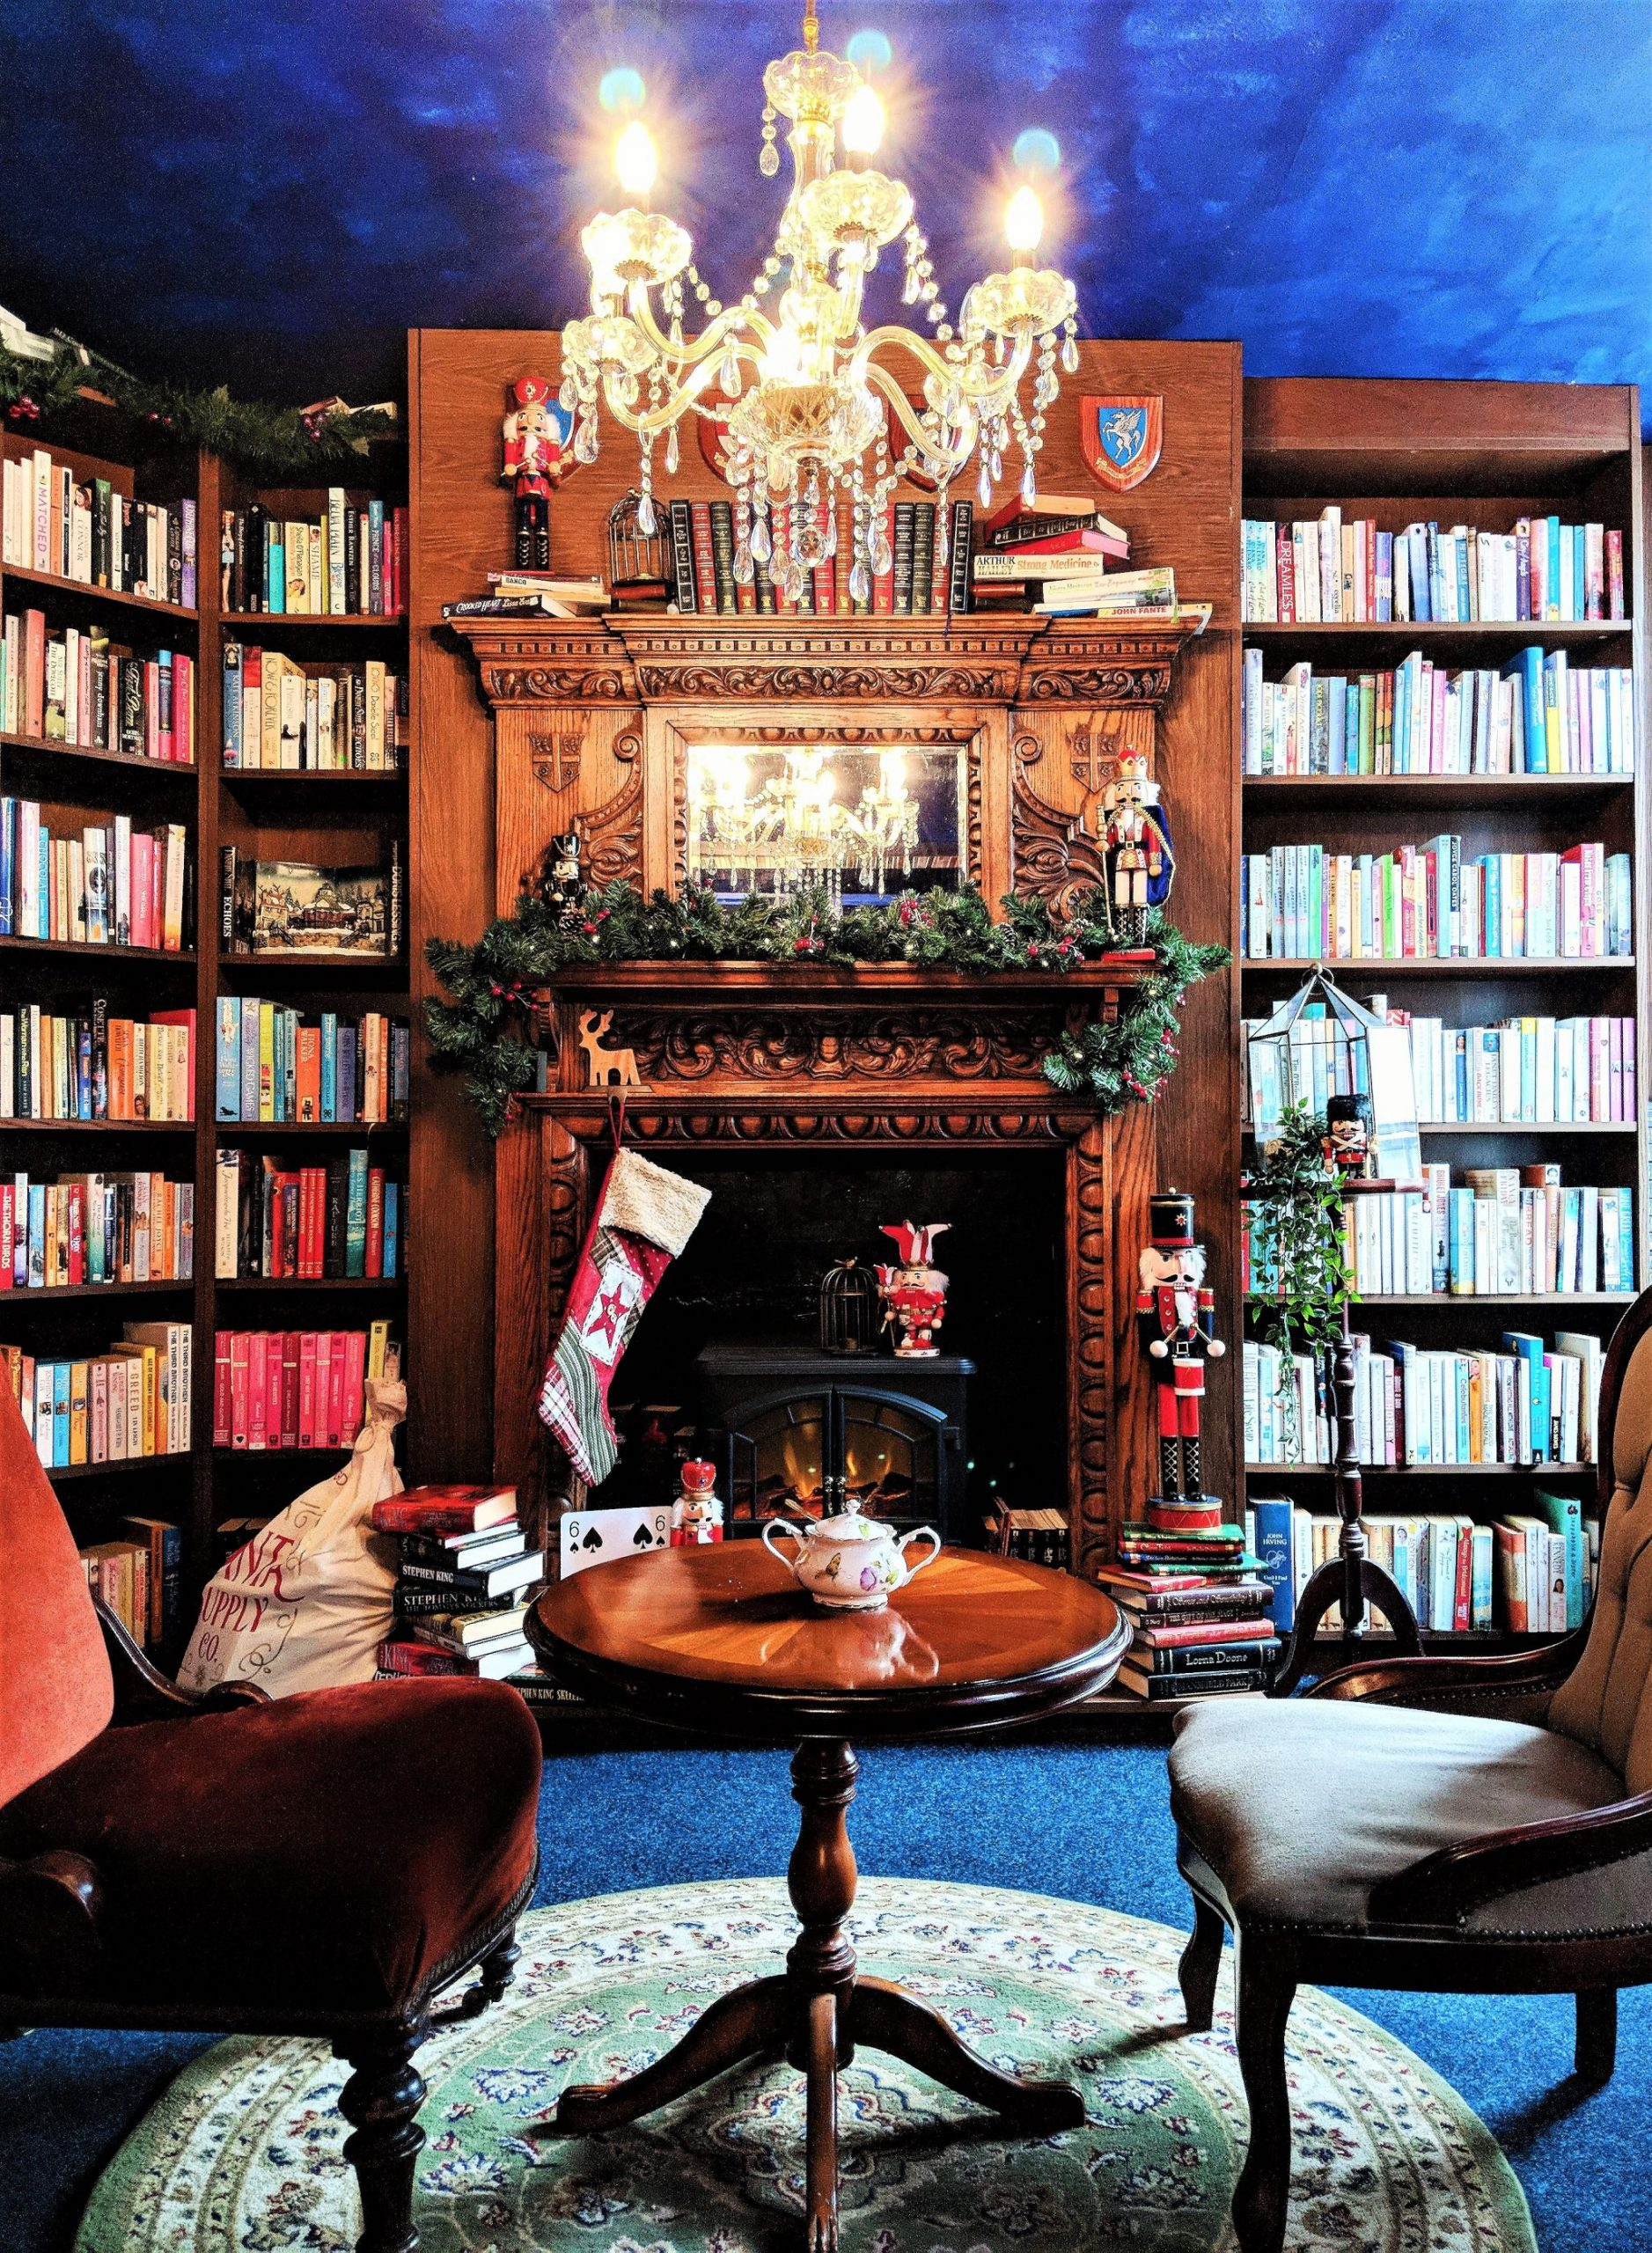 The Upstairs Fireplace Barrister's Book Chamber